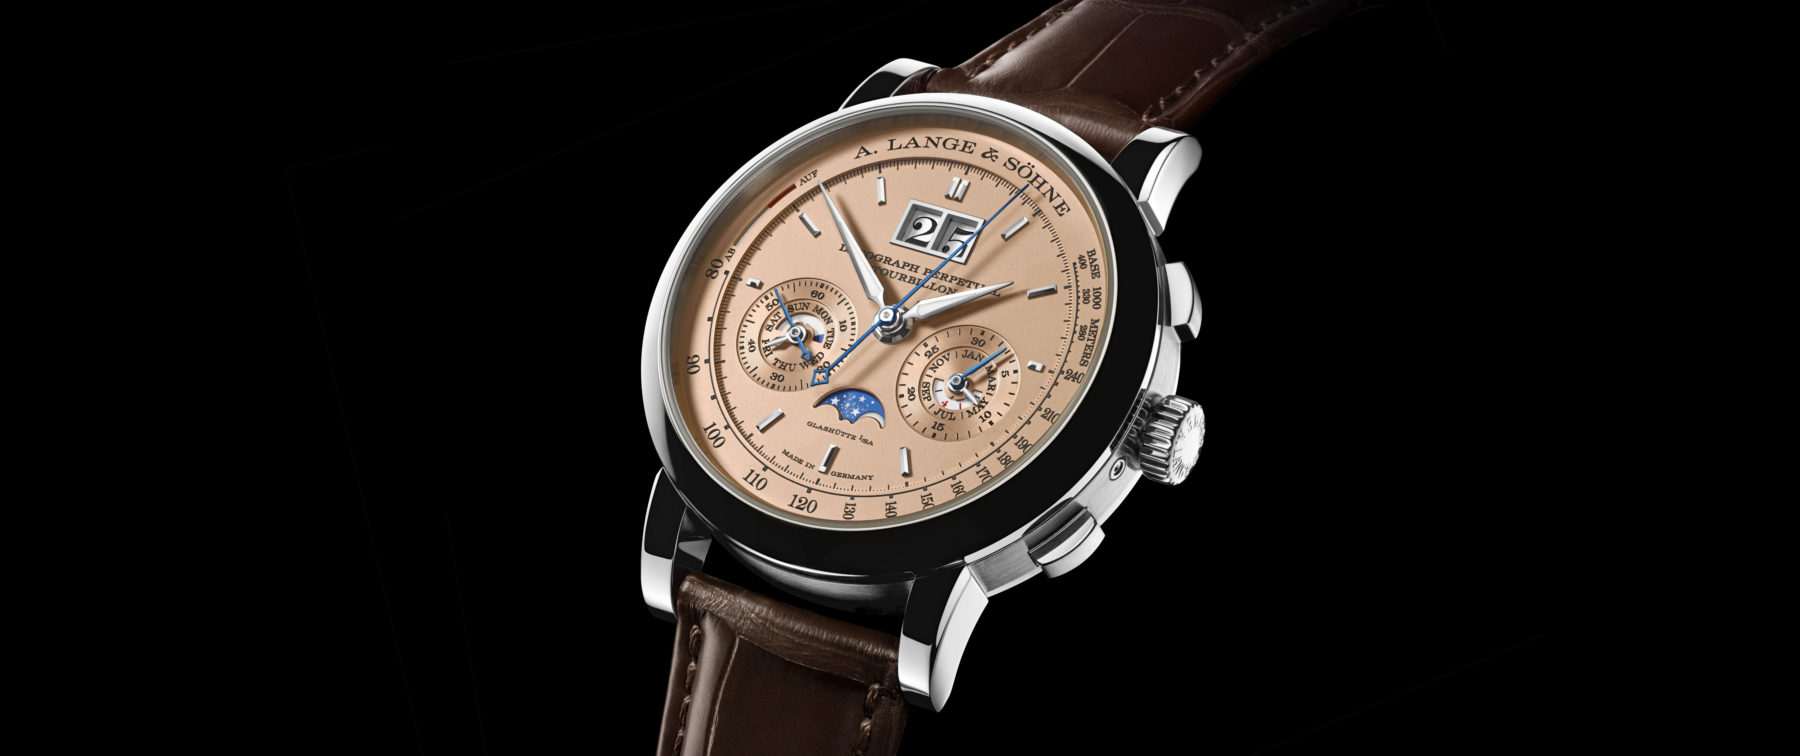 Introducing our favourite watches from SIHH 2019